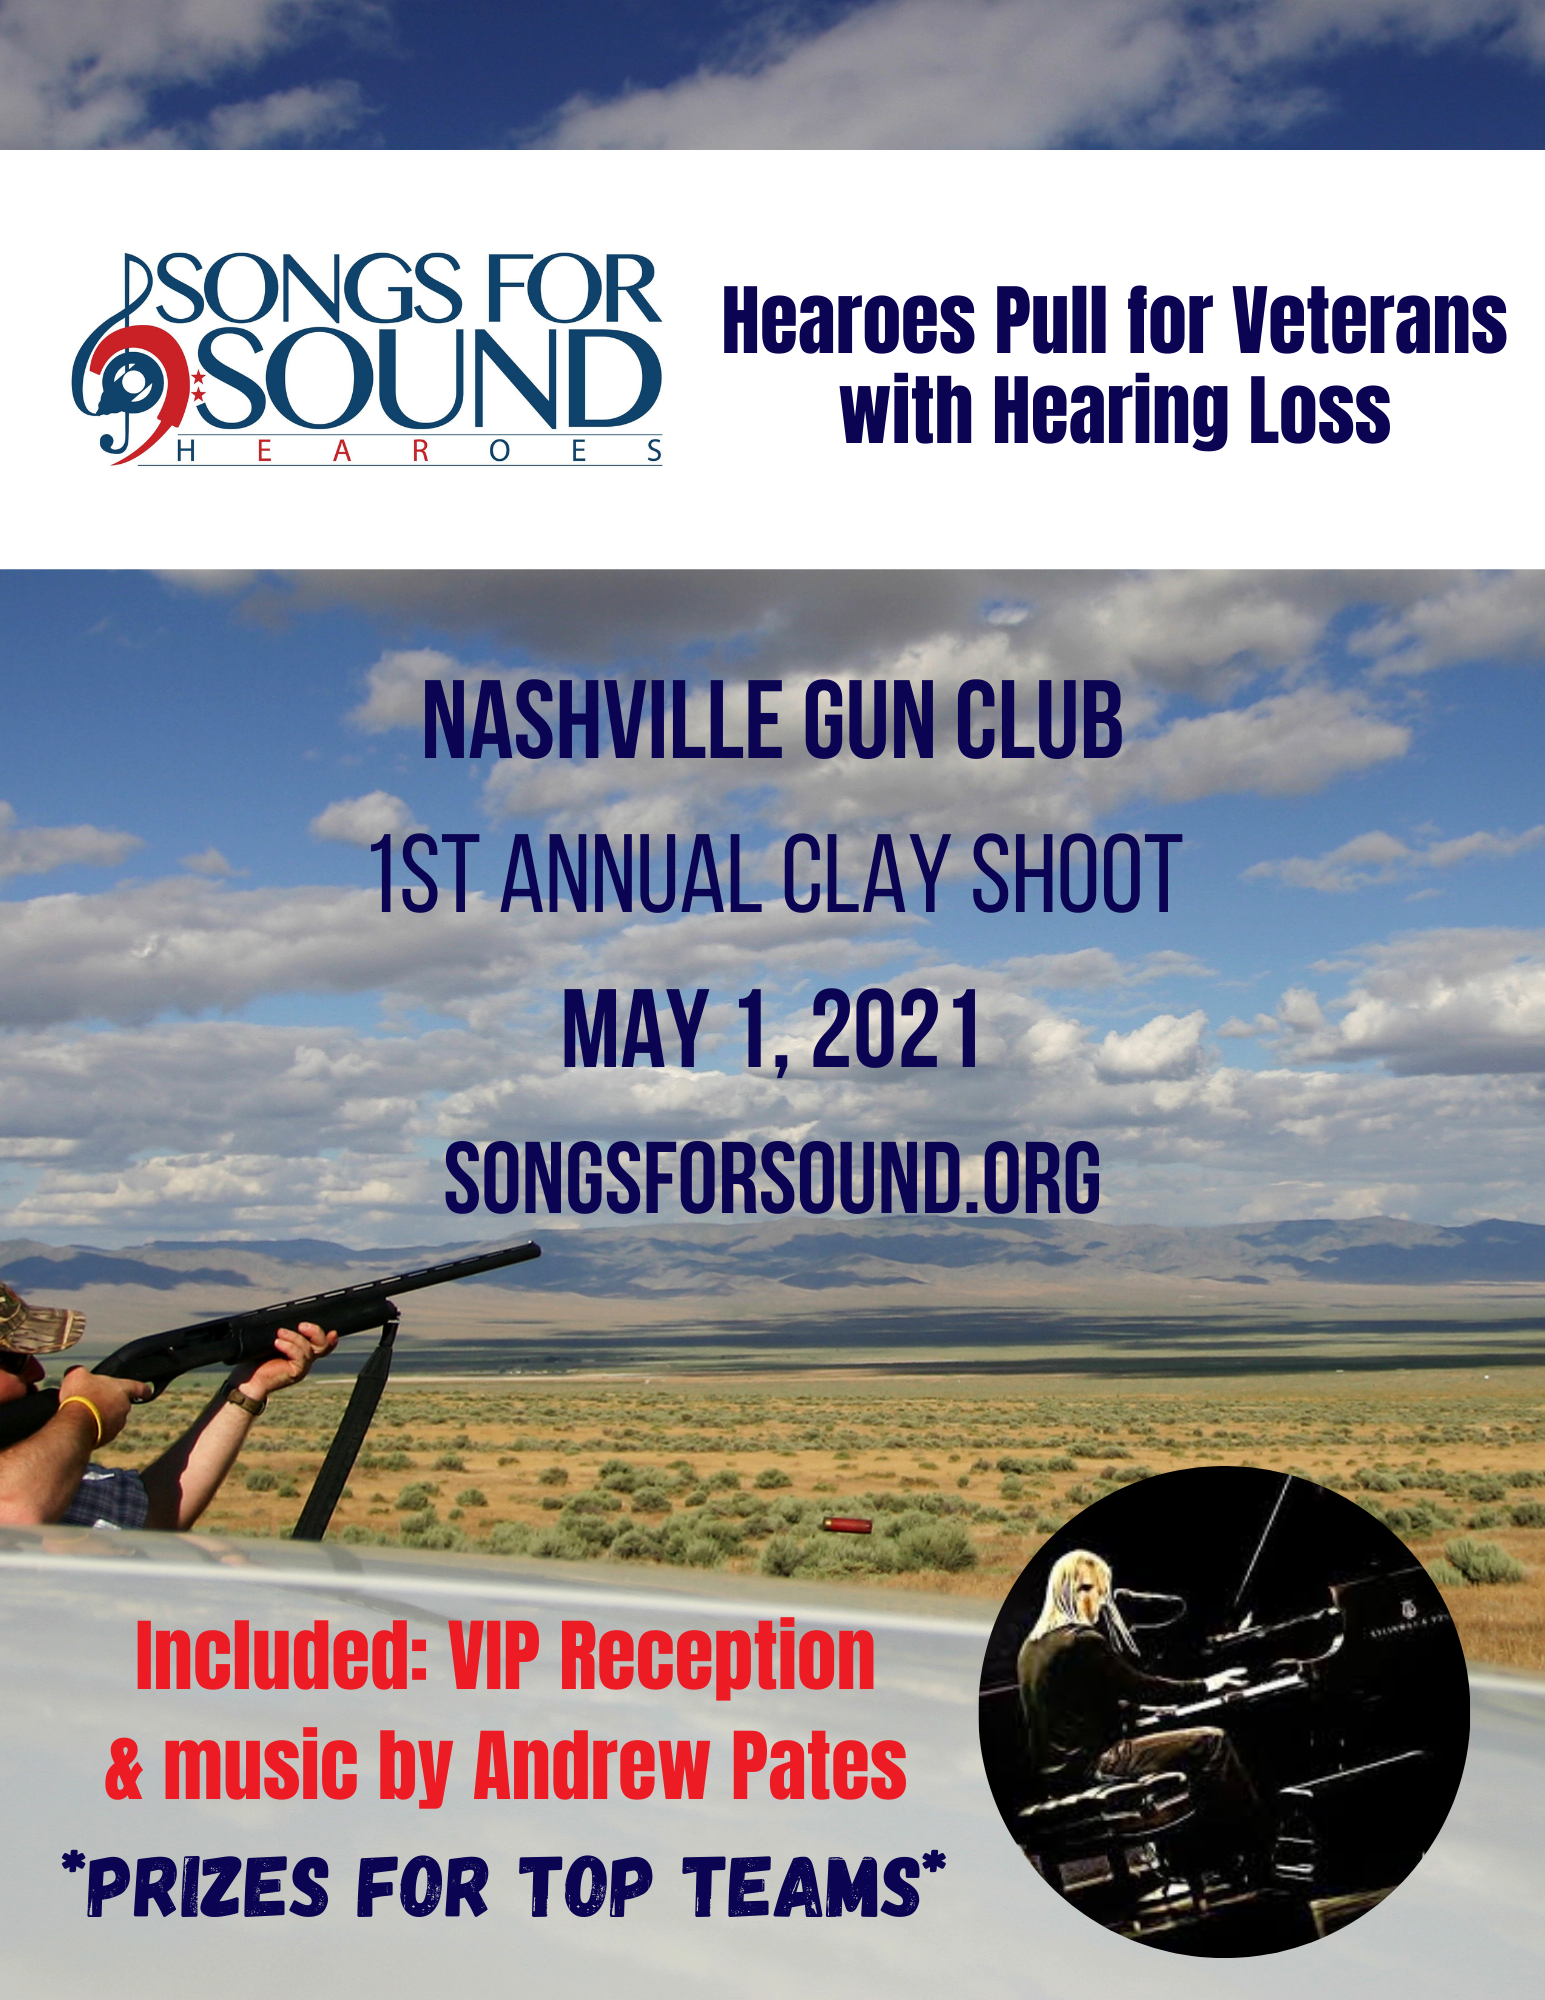 HEAROES PULL FOR VETS SPONSOR PACKAGES